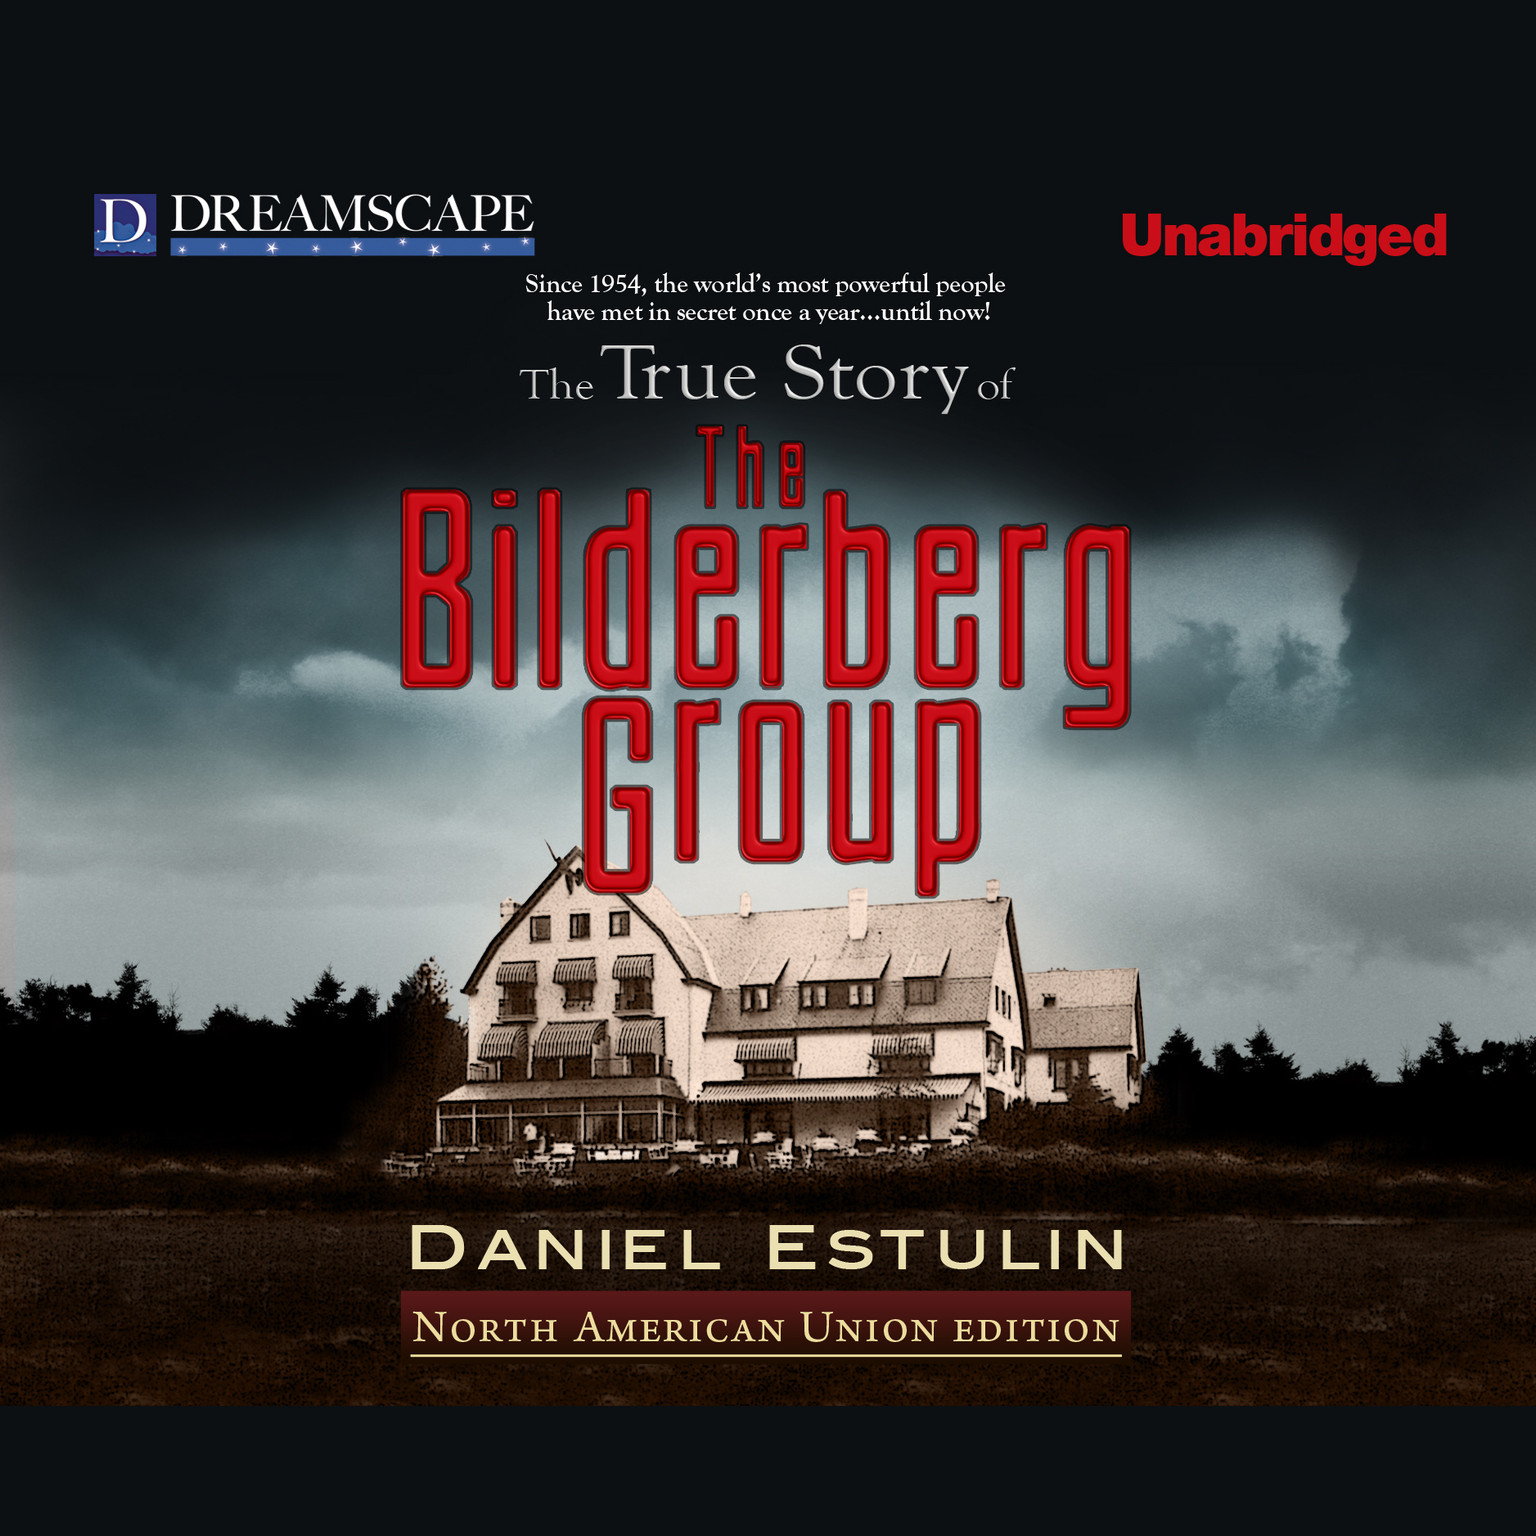 Printable The True Story of The Bilderberg Group Audiobook Cover Art